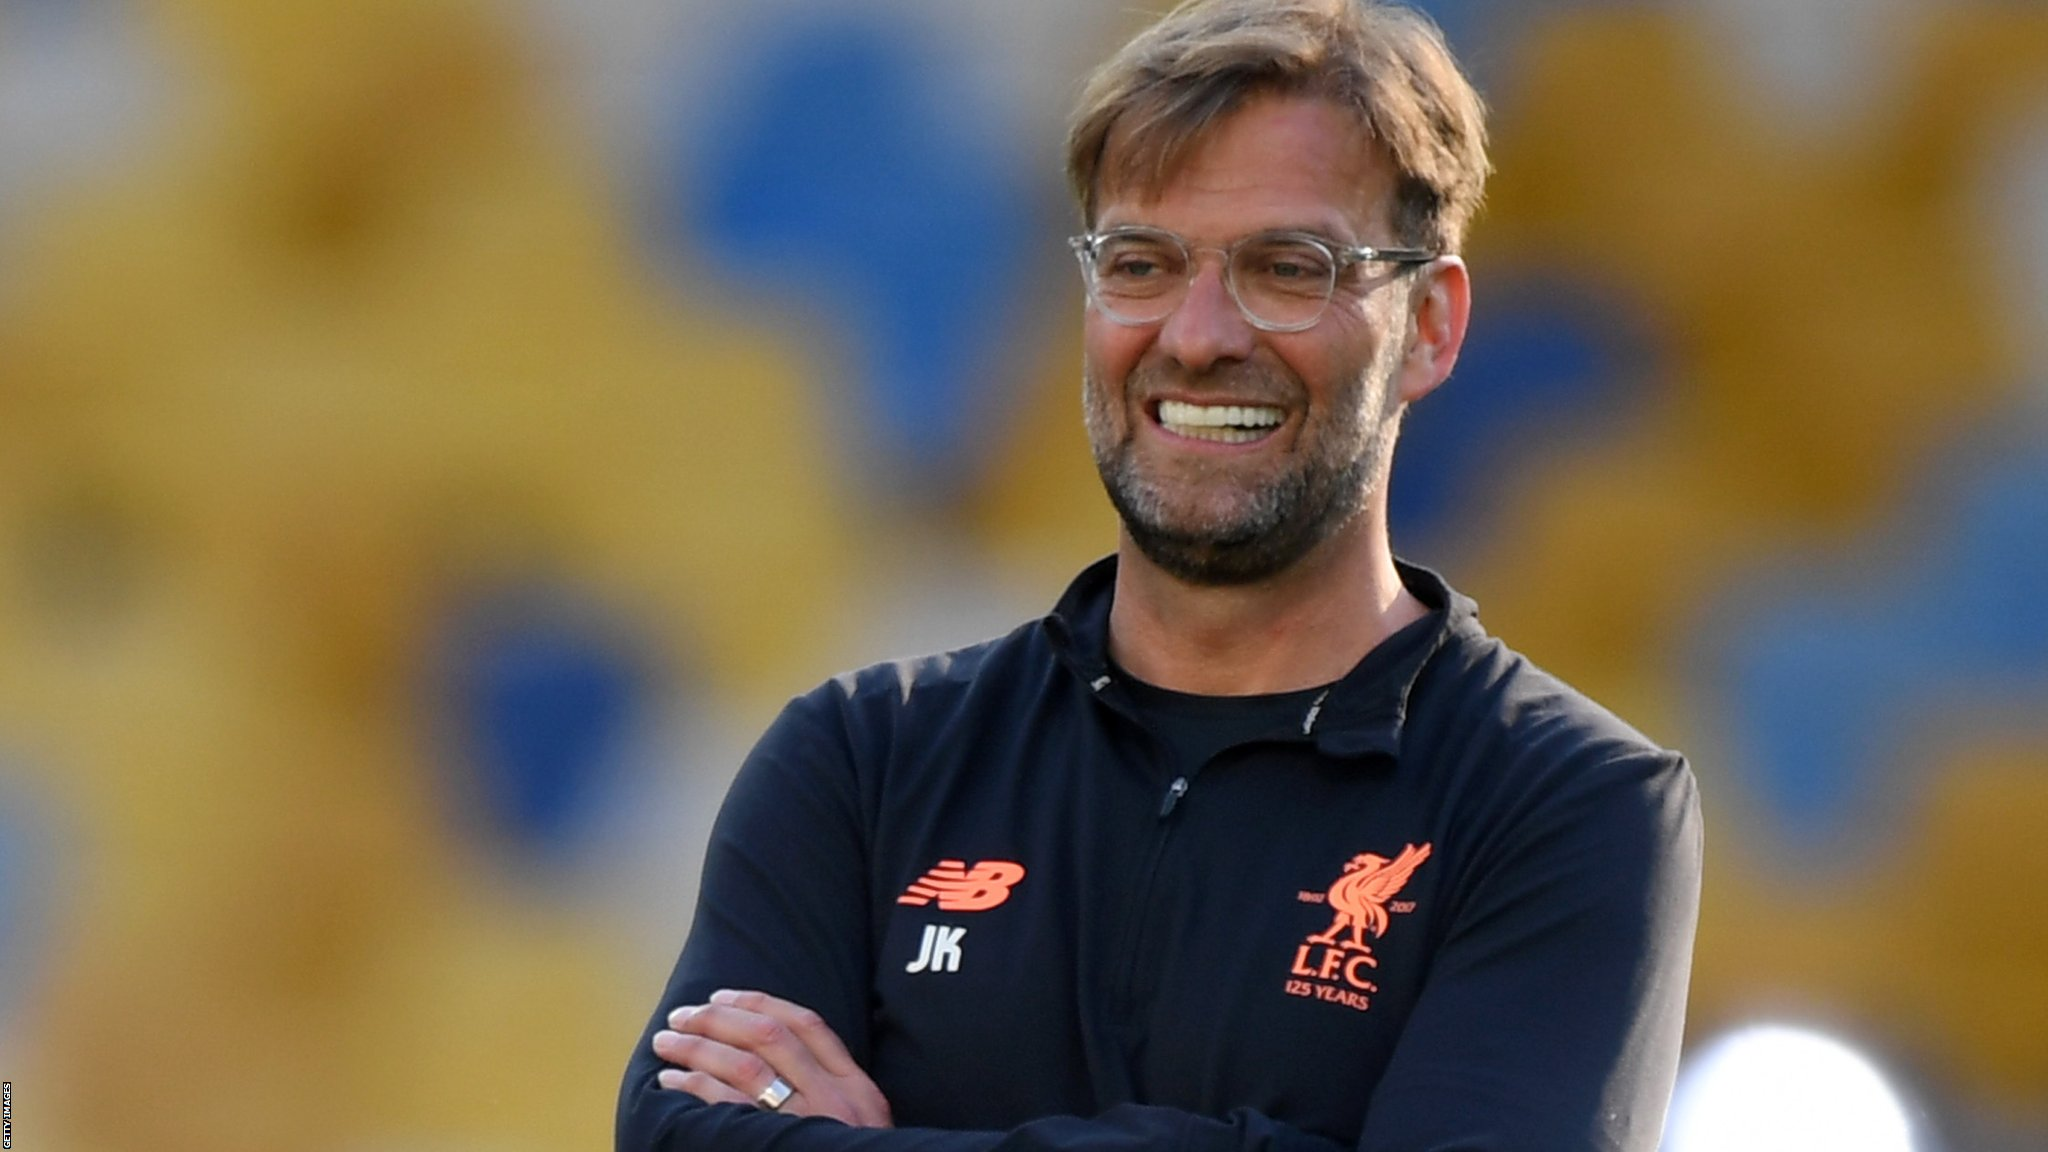 'Only a matter of time' before Klopp wins trophies, says Ayre